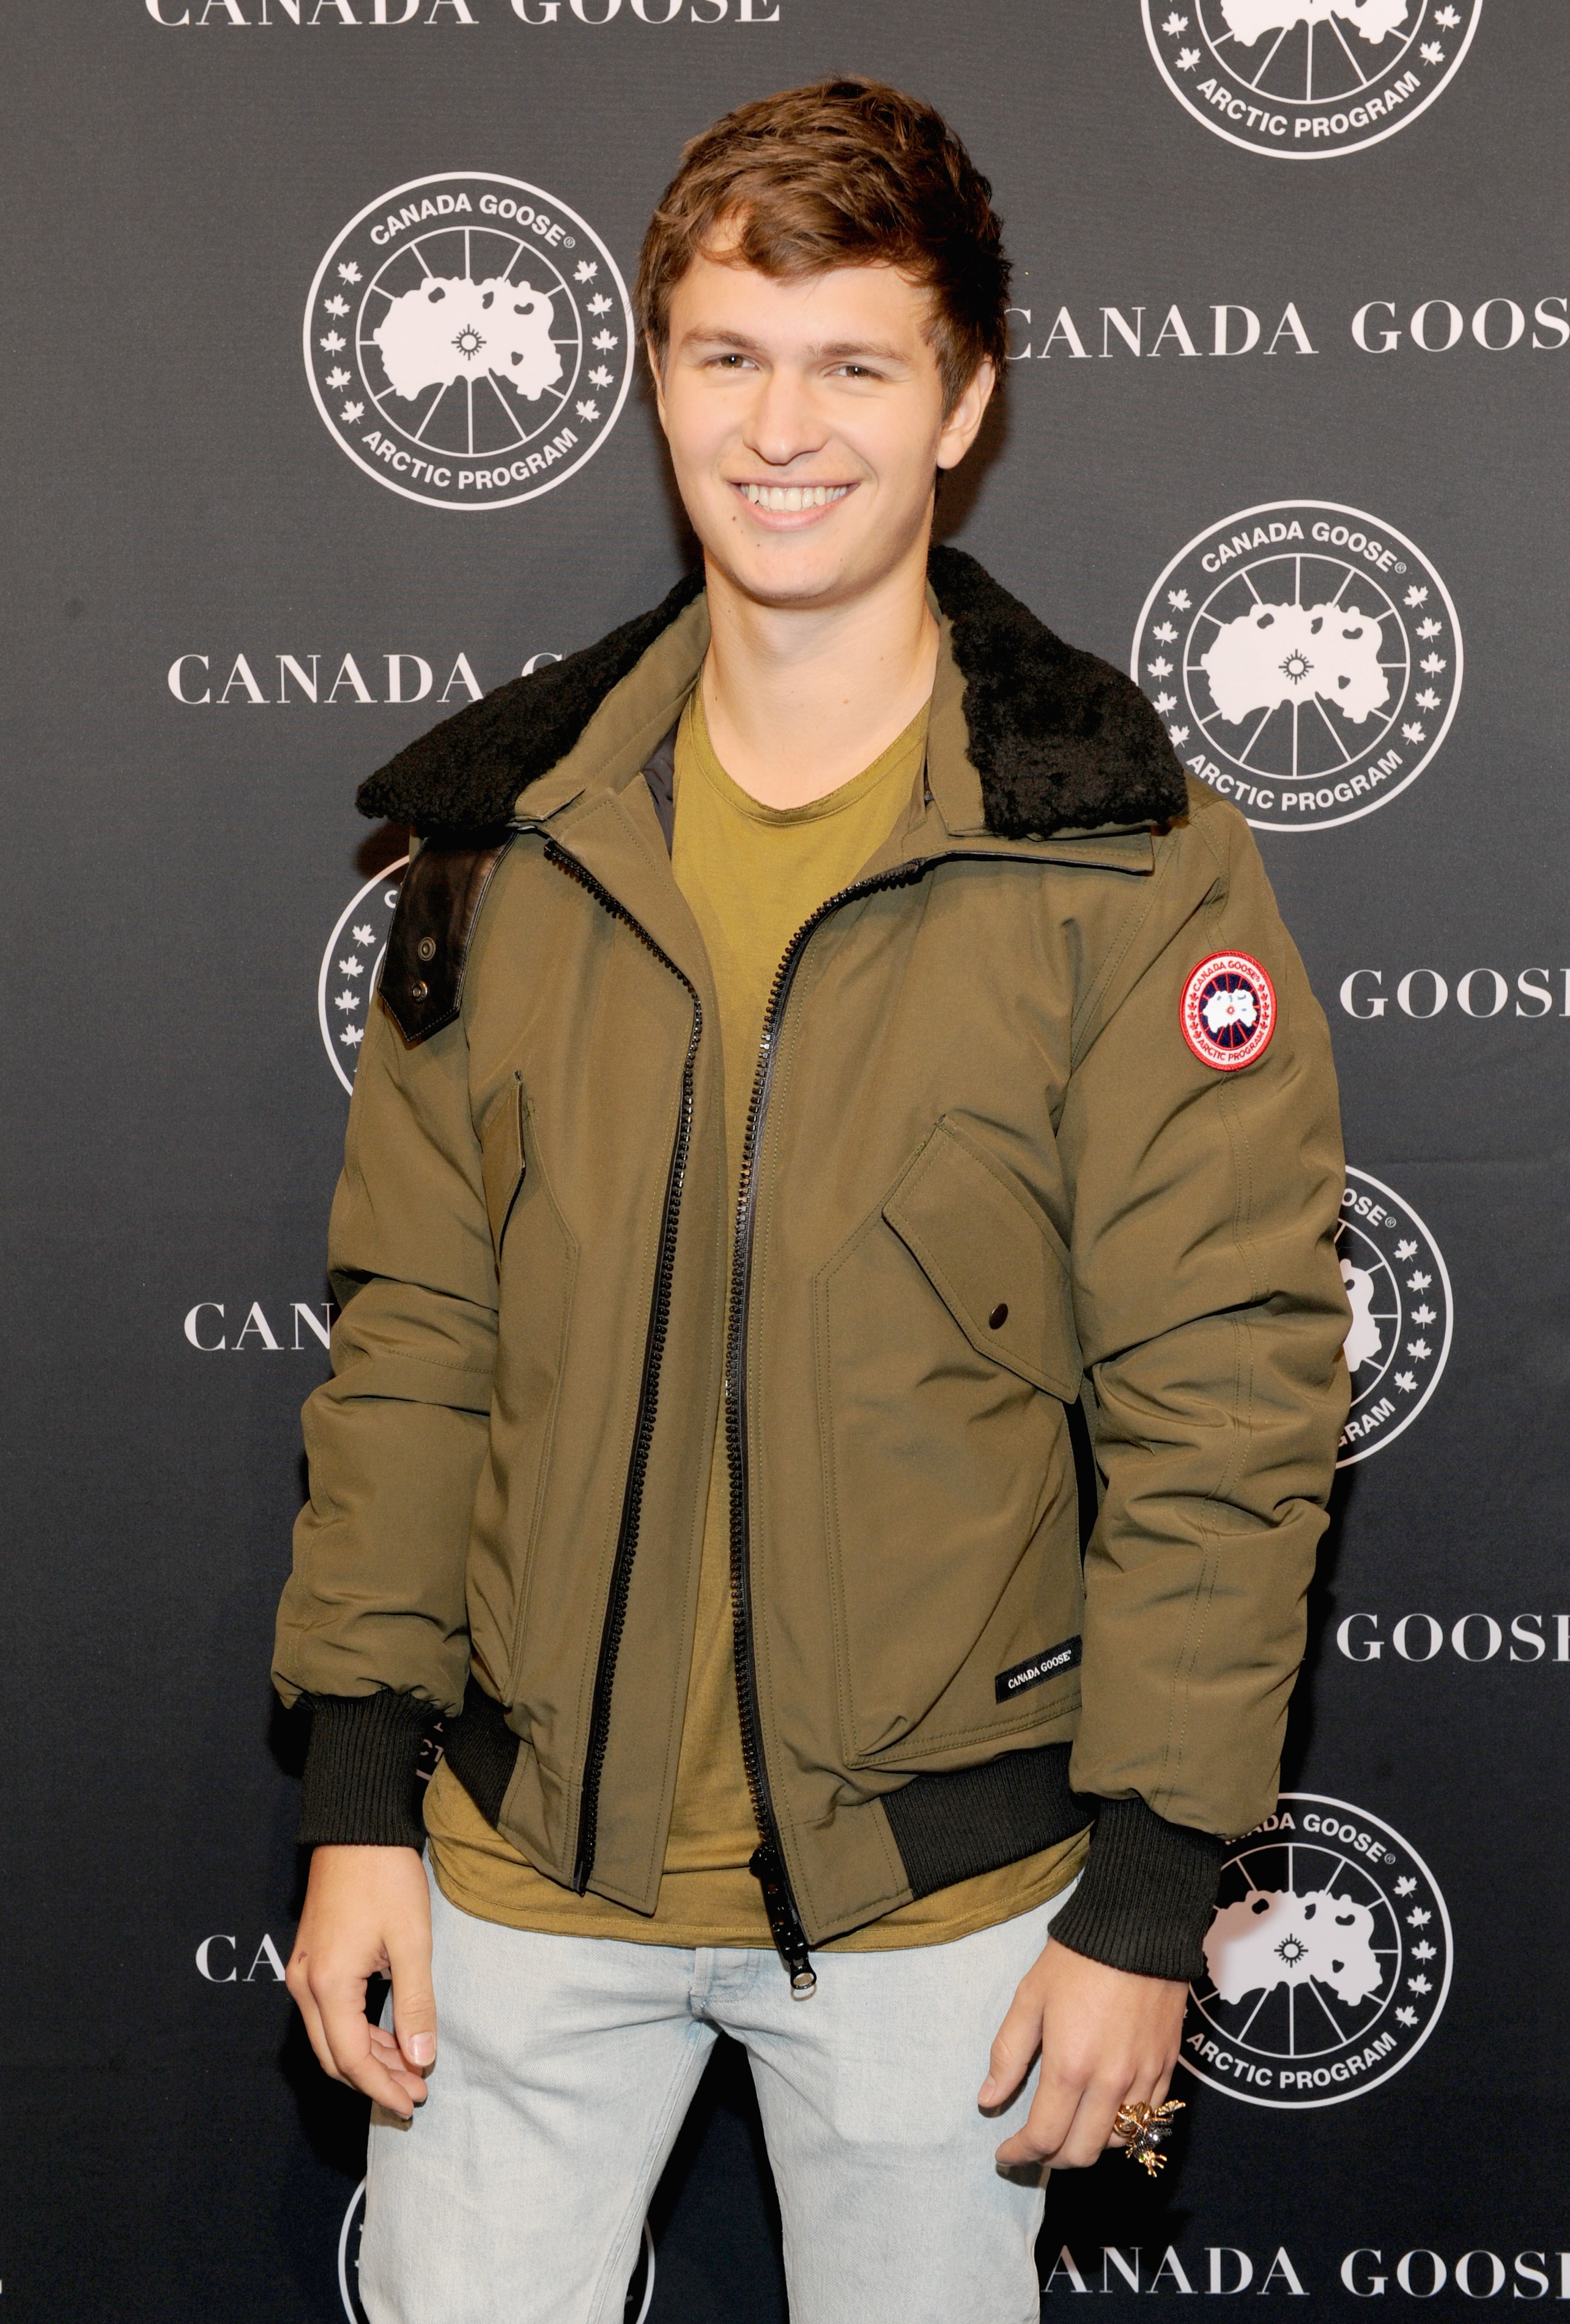 NEW YORK, NY - NOVEMBER 16: Actor Ansel Elgort attends the Canada Goose New York City Flagship Store opening on November 16, 2016 in New York City.